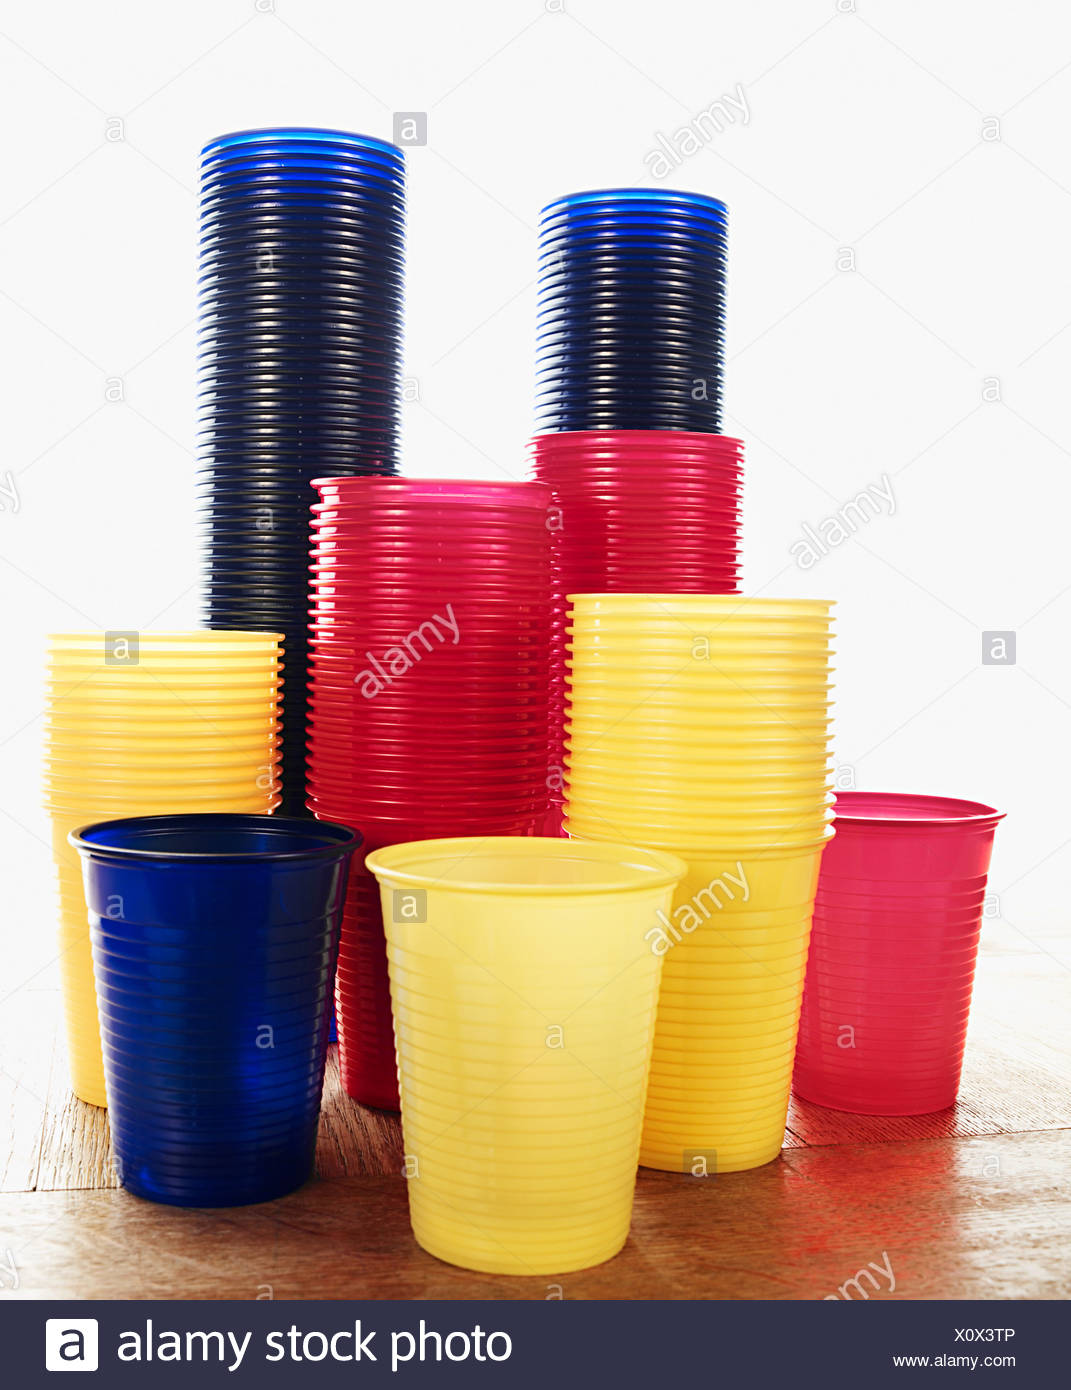 Stacked plastic cups - Stock Image